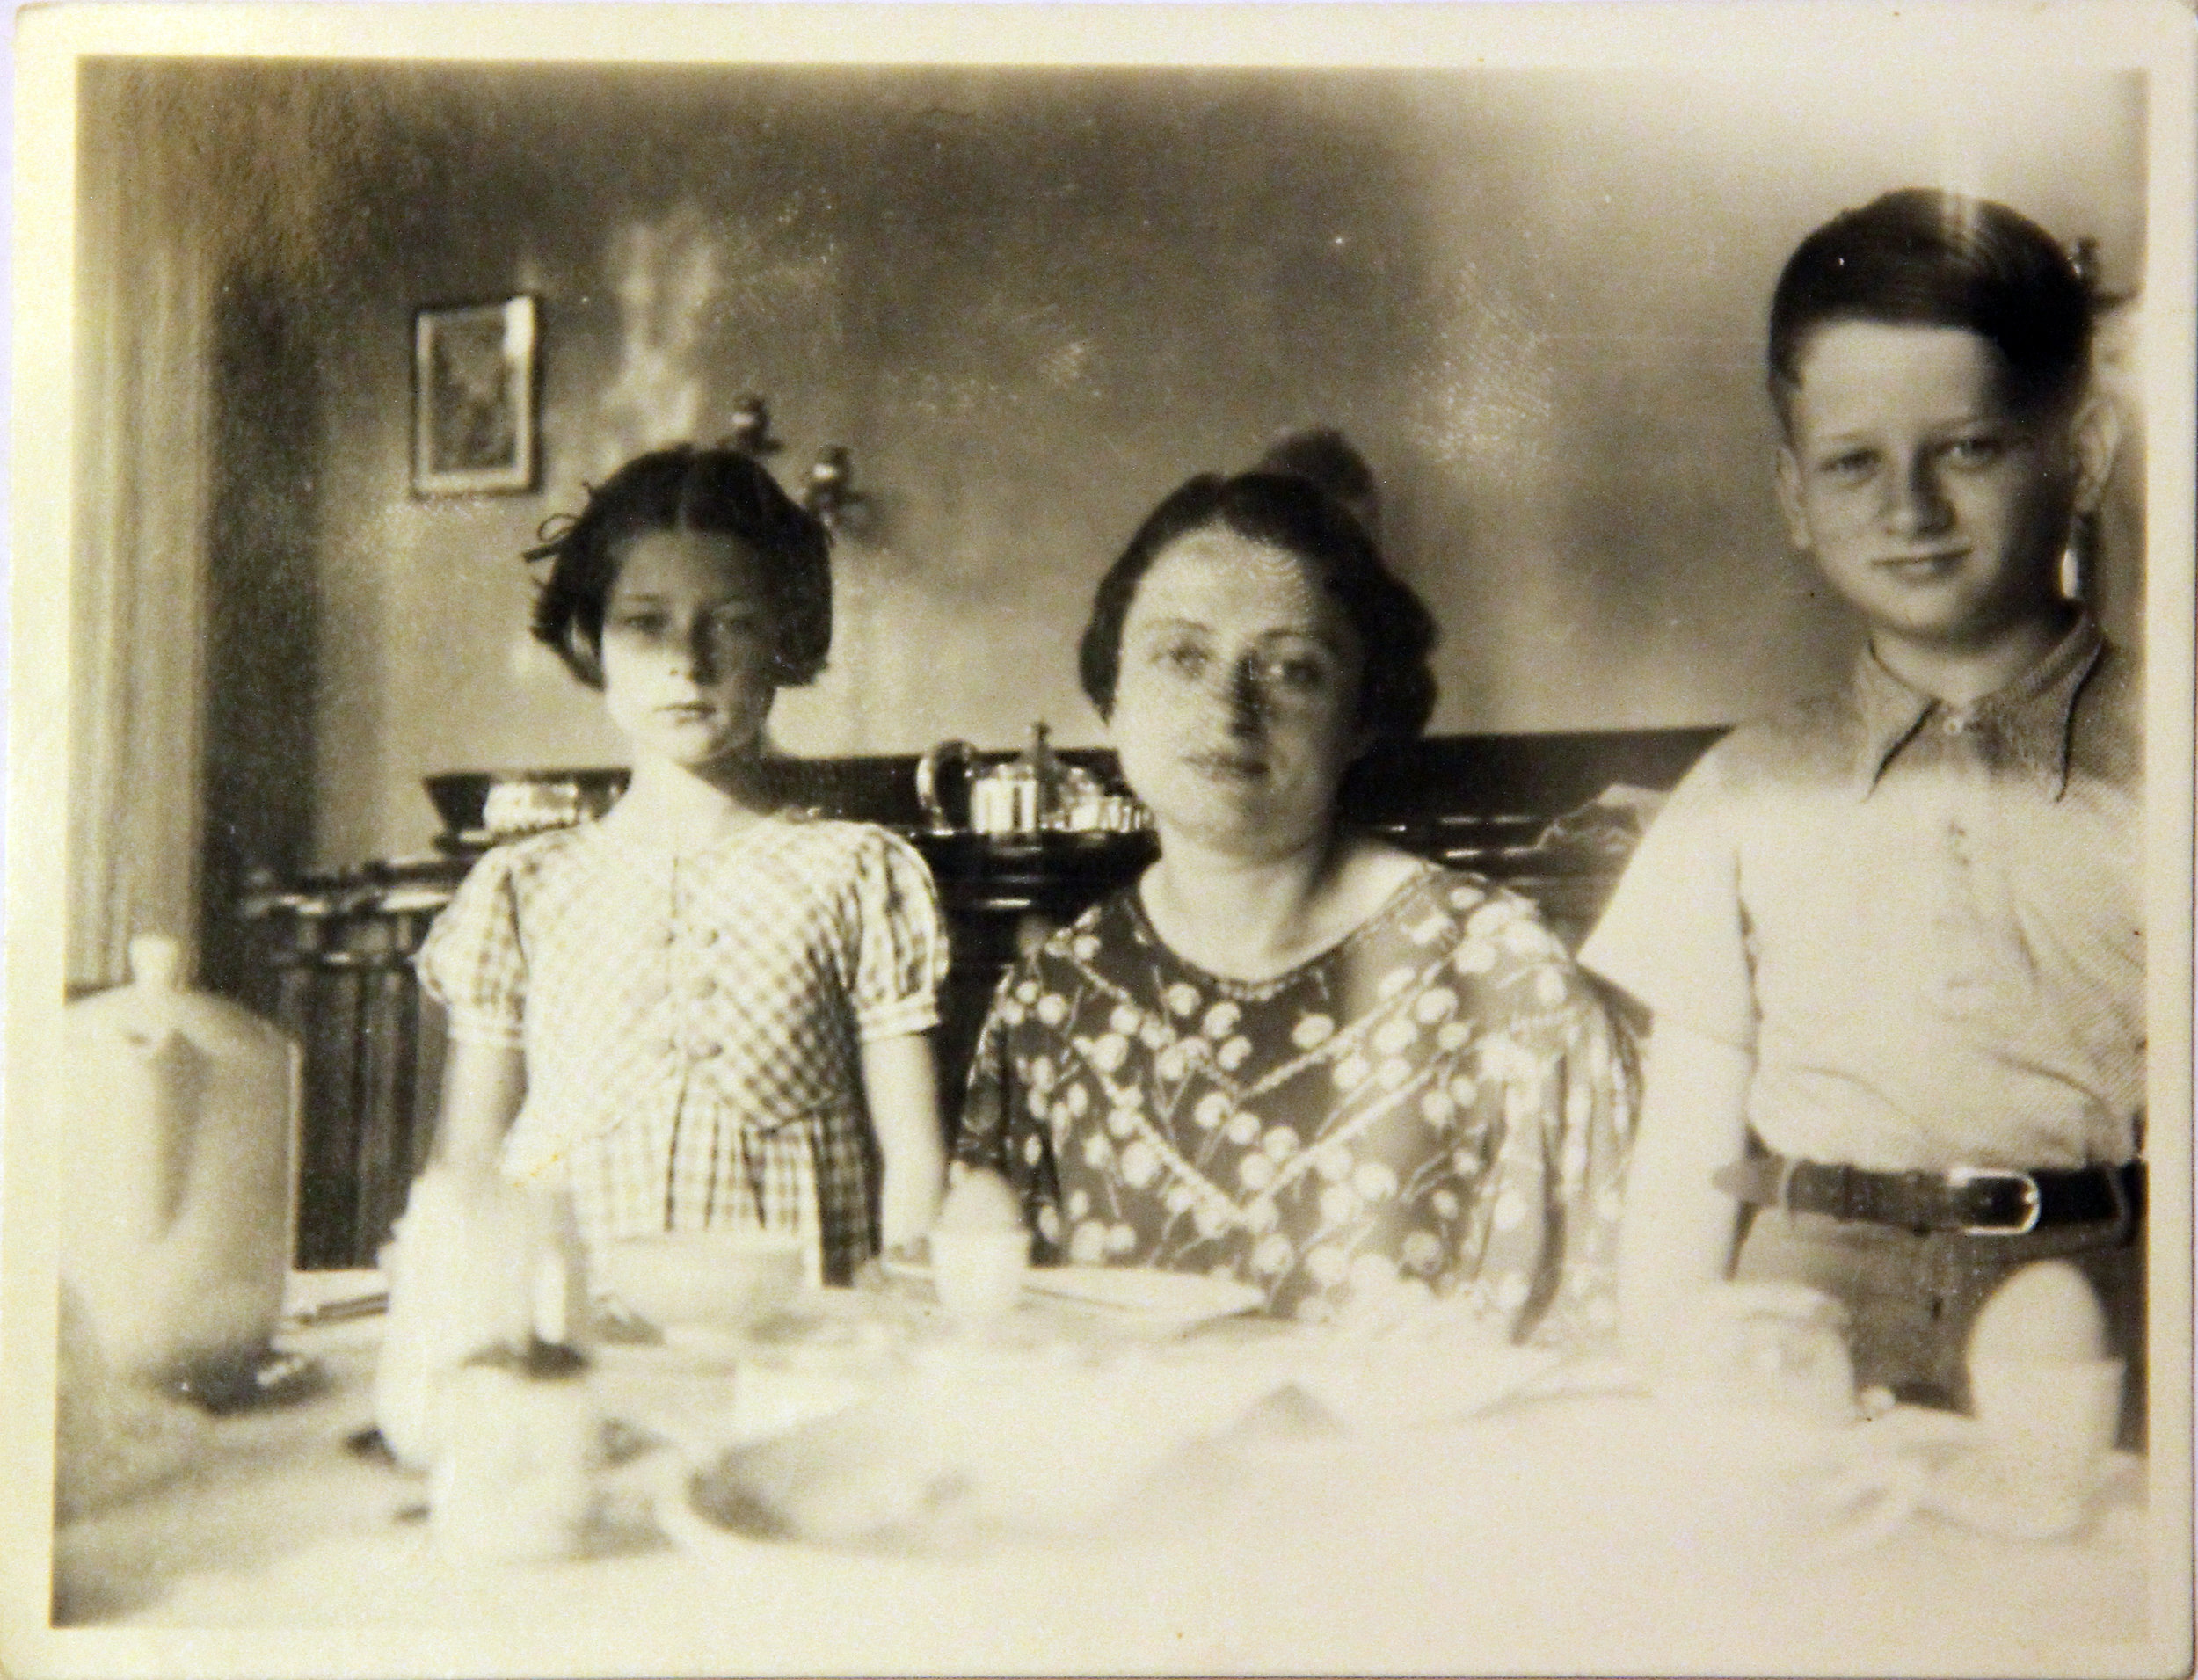 Irene, Mutti, and Werner shortly before being rounded up by the police and sent to Camp Westerbork, circa spring 1943.